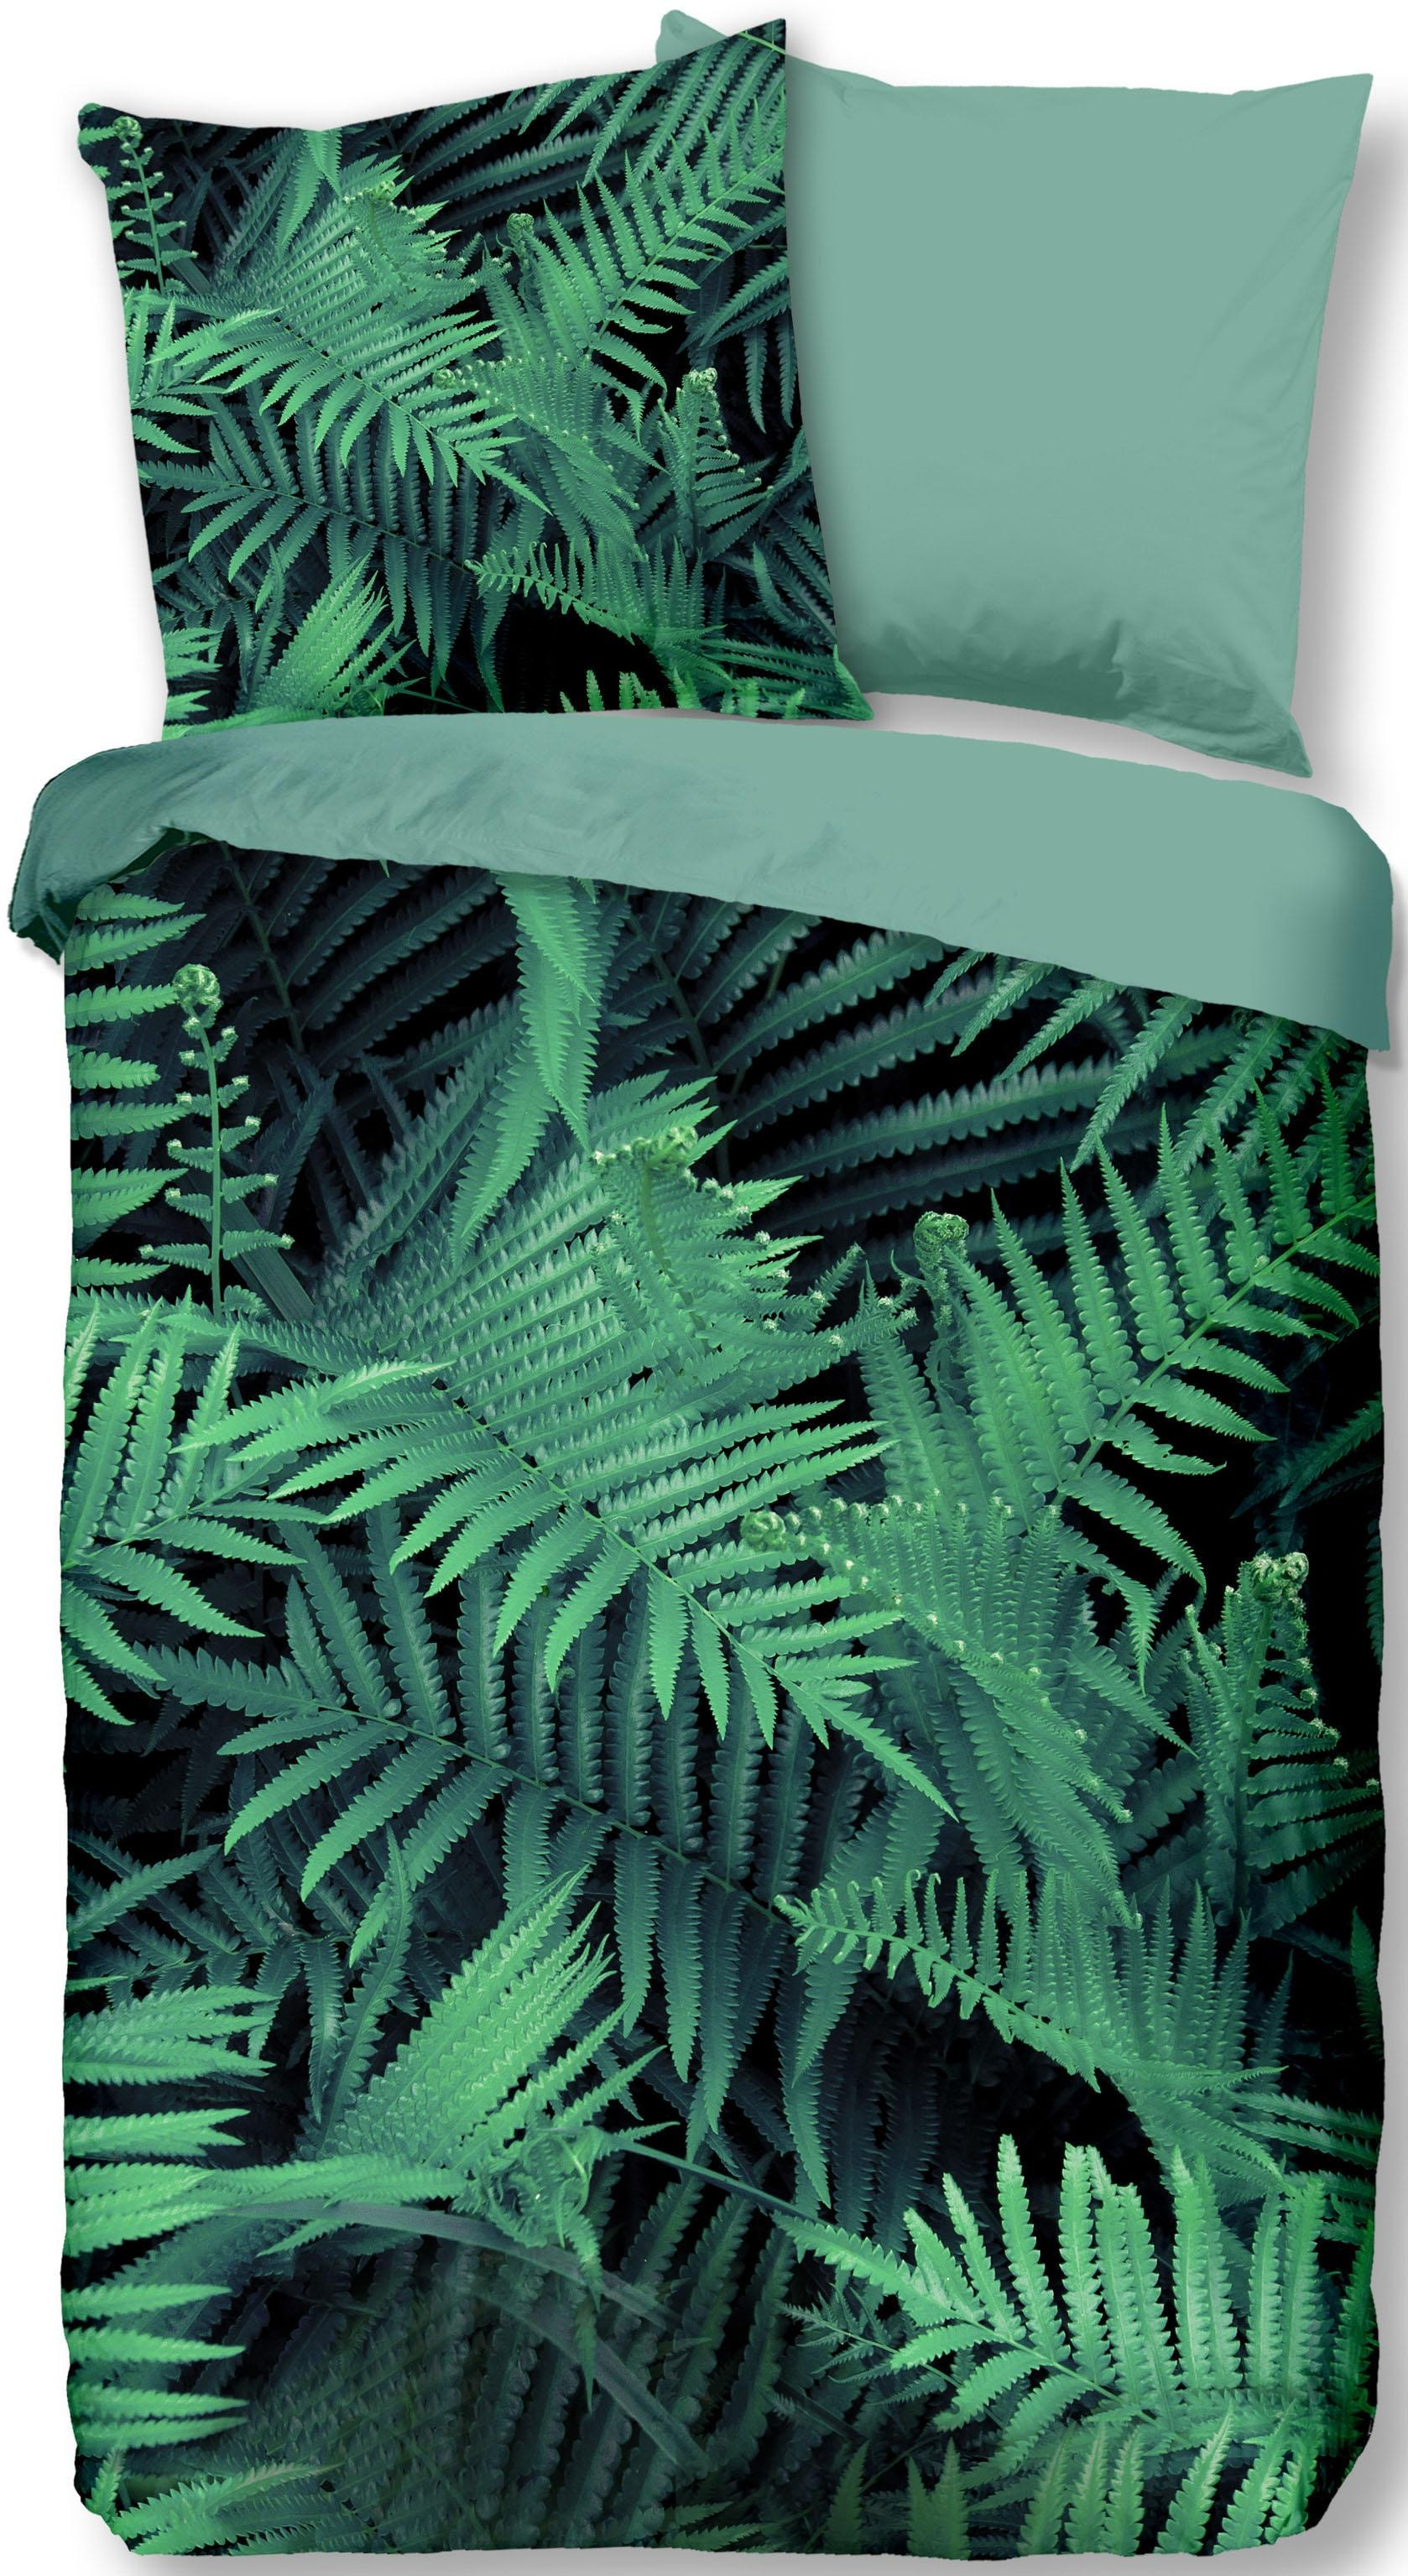 wendebettw sche ferns good morning online bei otto. Black Bedroom Furniture Sets. Home Design Ideas